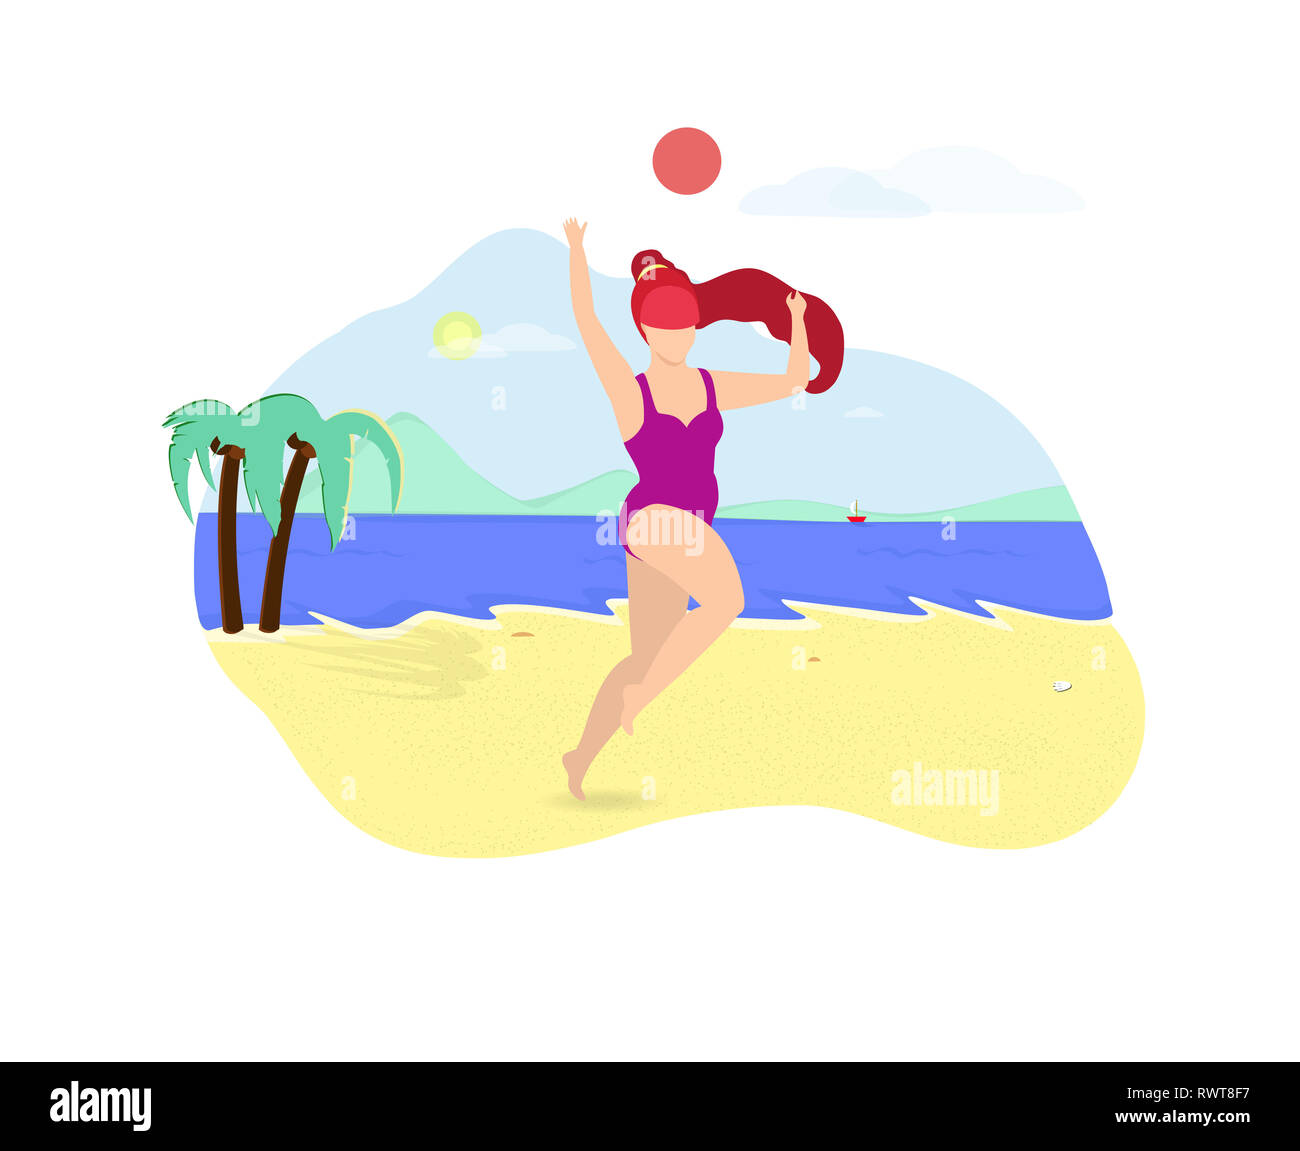 Young Beautiful Girl with Long Ginger Hair Playing with Ball on Beach. Woman in Purple Swimsuit Jumping. Valleyball Player, Body Positive, Healthy Lif - Stock Image